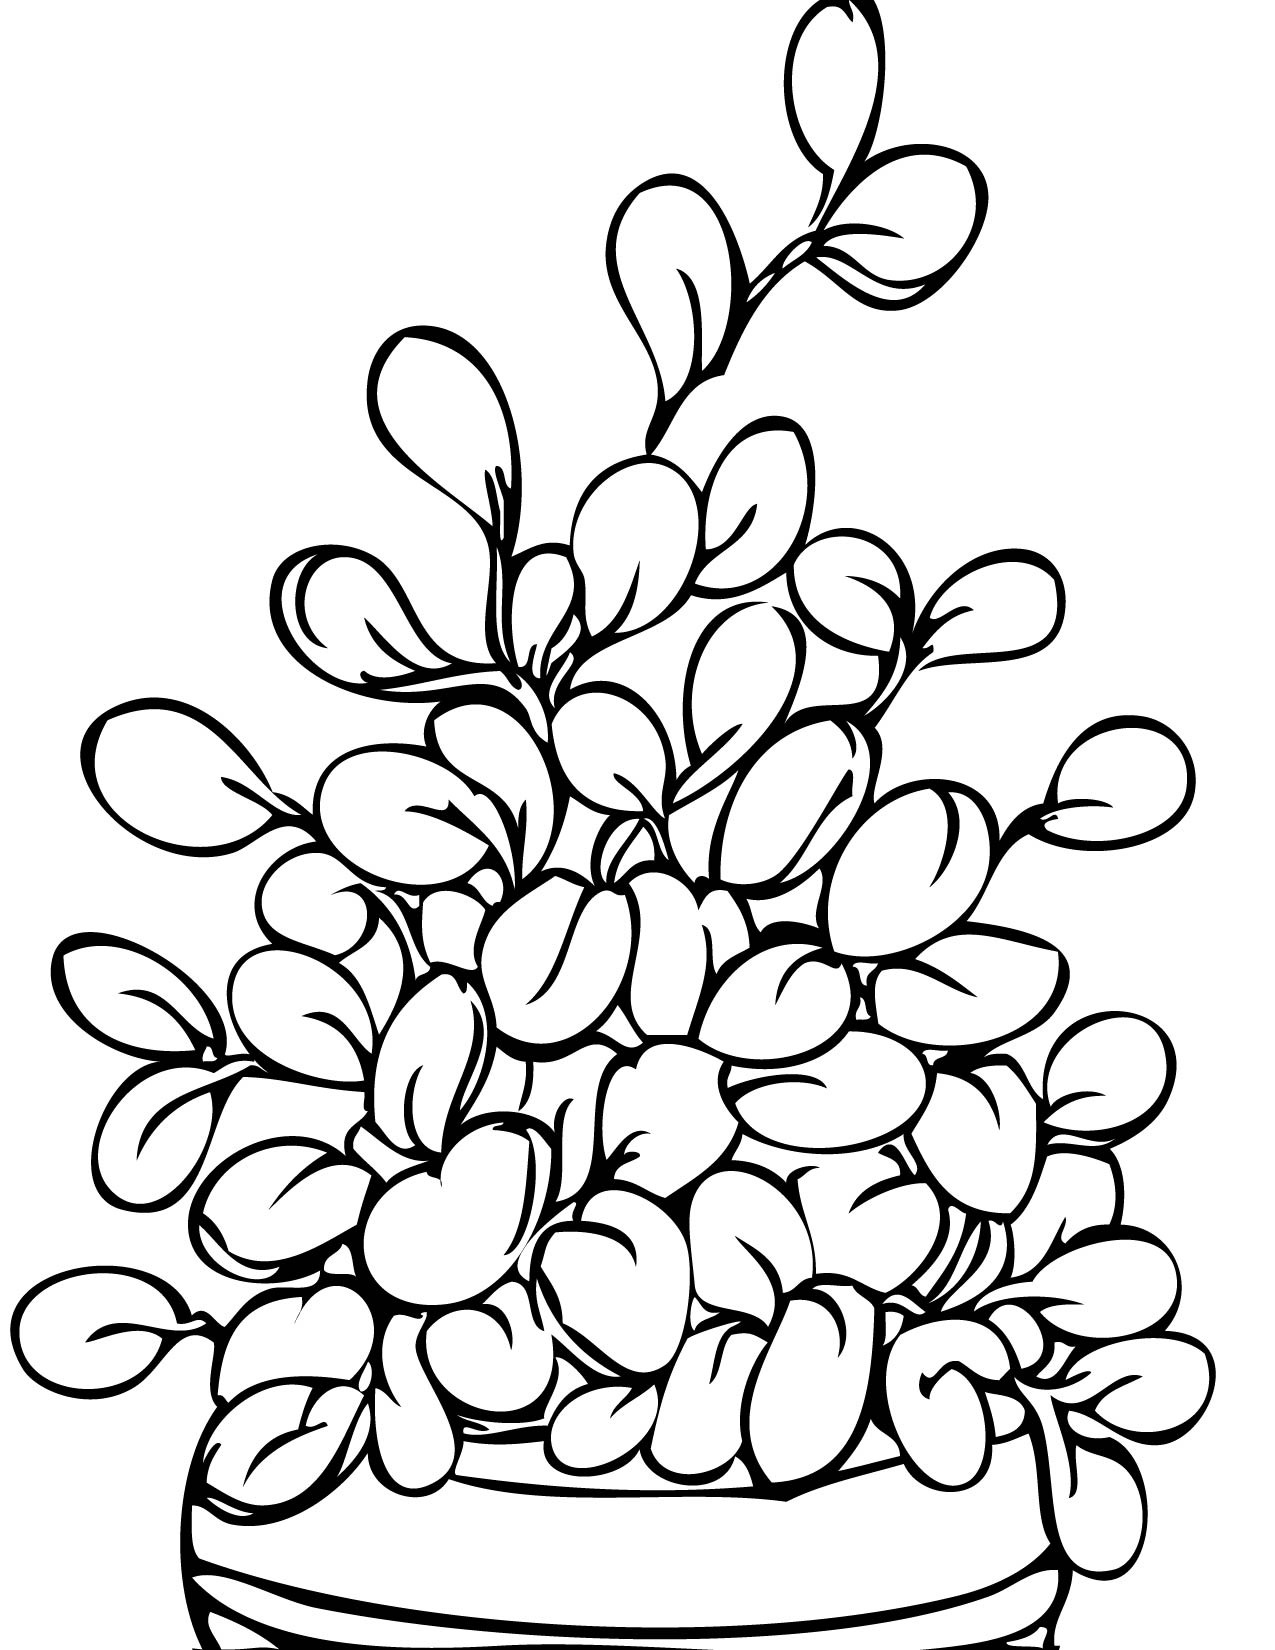 Plant Coloring Pages For Kids